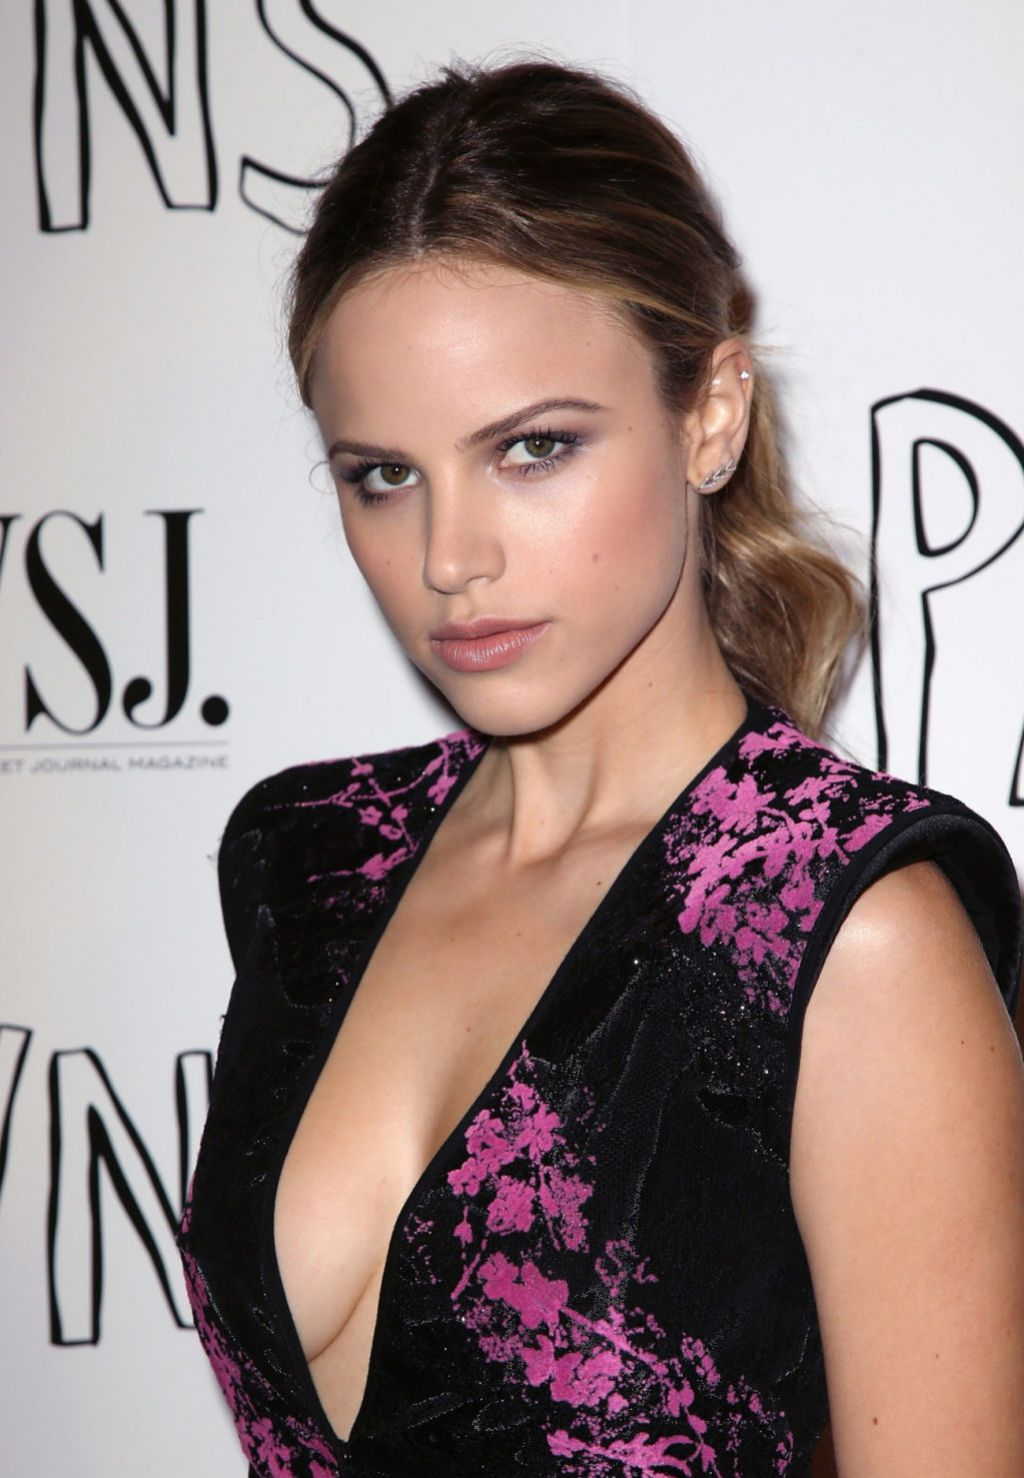 halston sage fansitehalston sage height, halston sage age, halston sage instagram, halston sage paper towns, halston sage tumblr, halston sage goosebumps, halston sage wiki, halston sage net worth, halston sage how to rock, halston sage fansite, halston sage interview, halston sage twitter, halston sage gif, halston sage rachel mcadams, halston sage and chord overstreet, halston sage photos, halston sage wdw, halston sage gallery, halston sage facebook, halston sage taylor swift